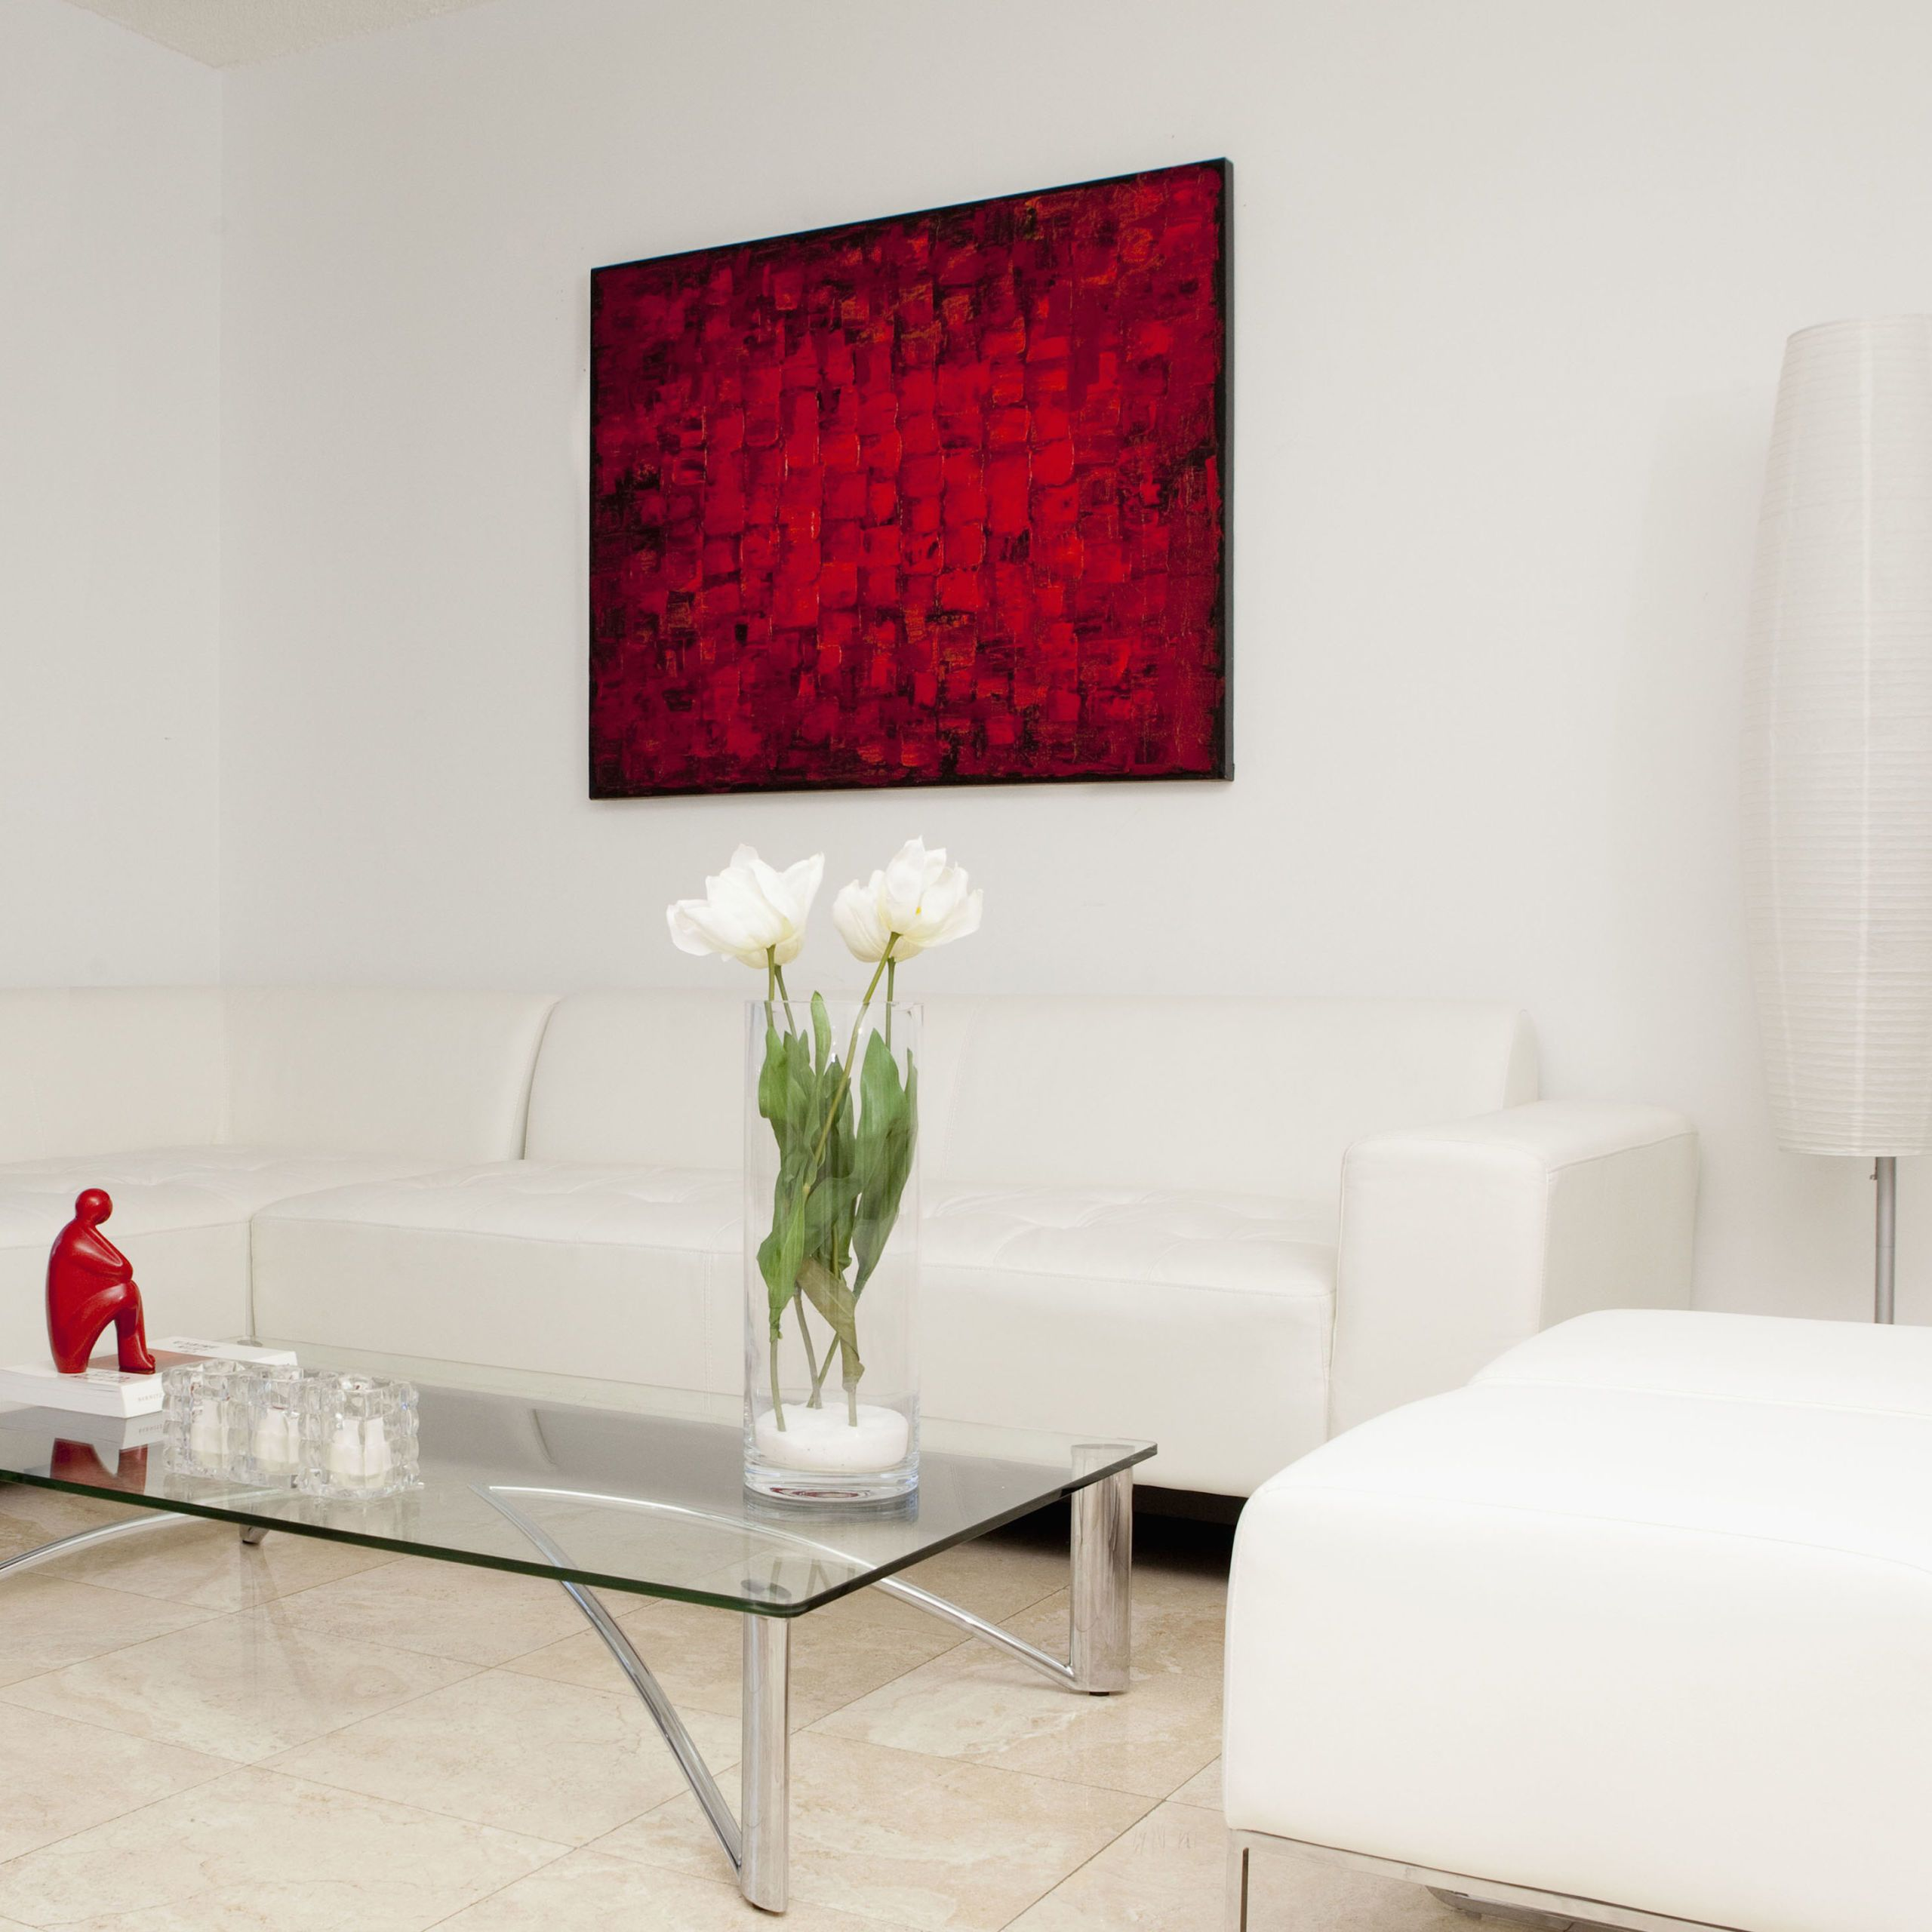 Best Paint Colors For A Home Gallery